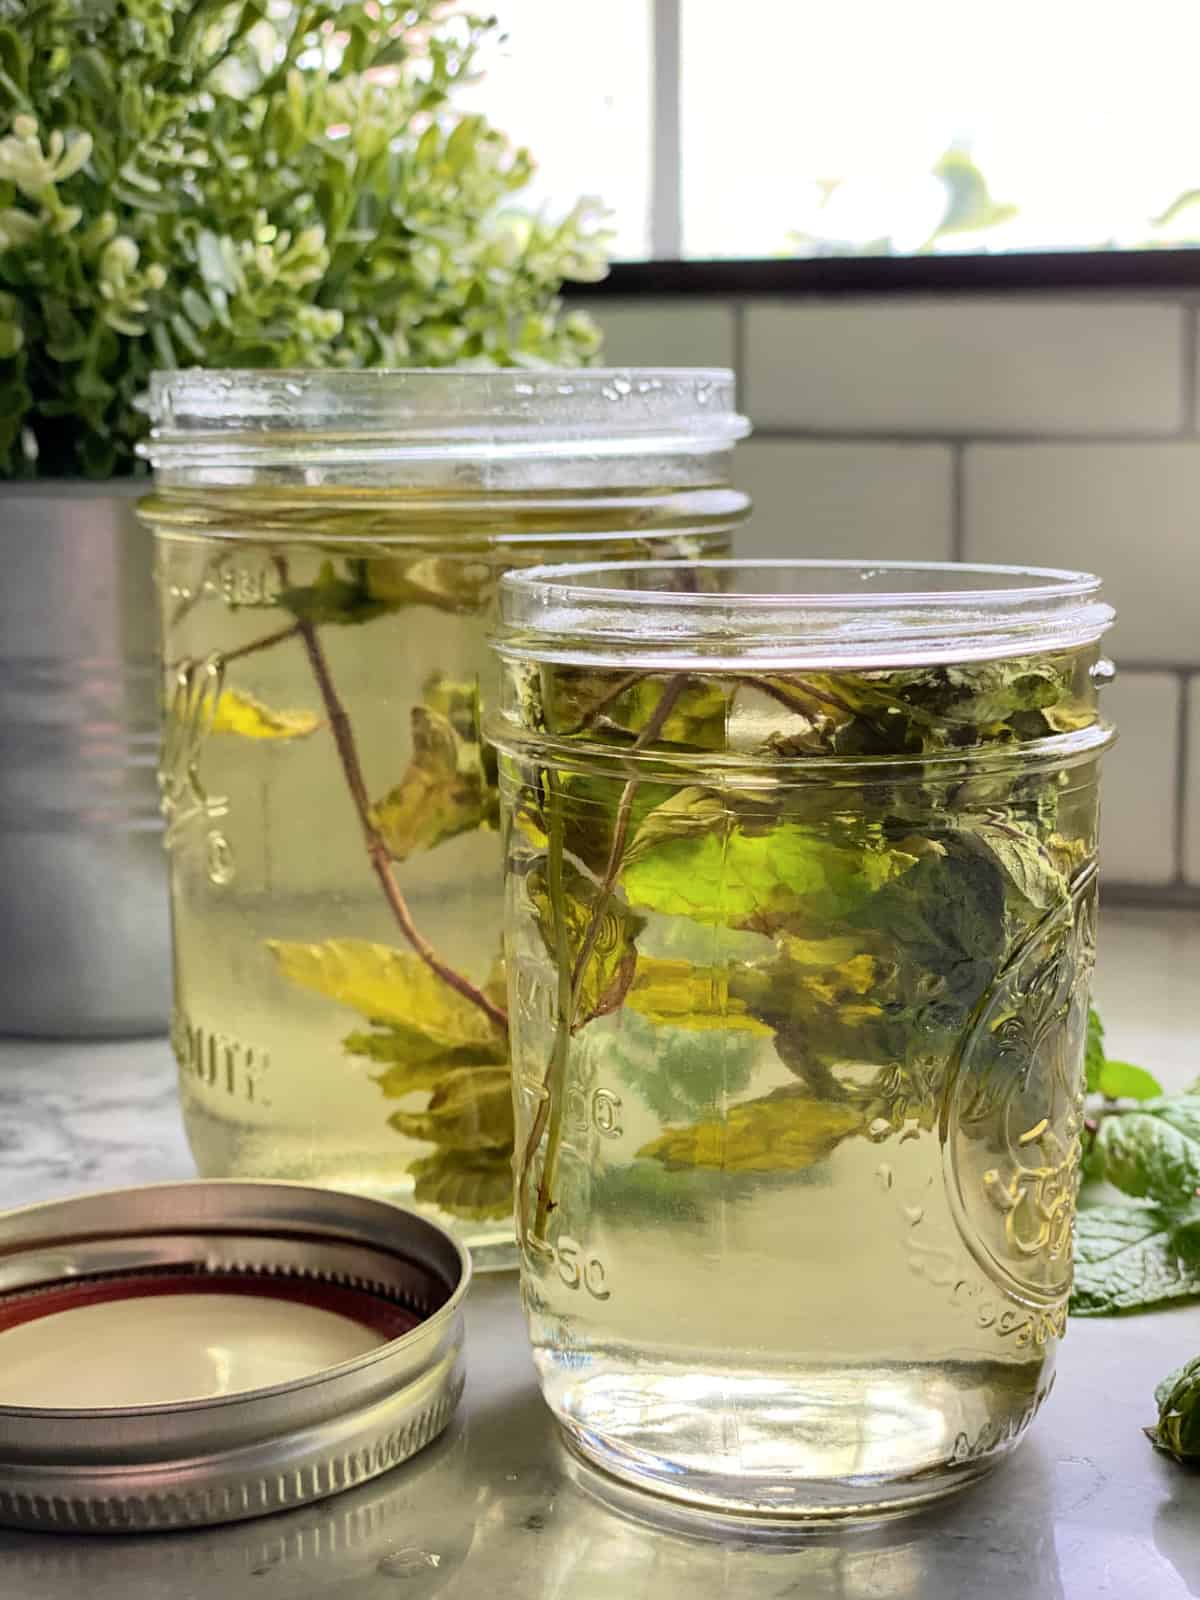 Two mason jars filled with mint sprigs and liquid.